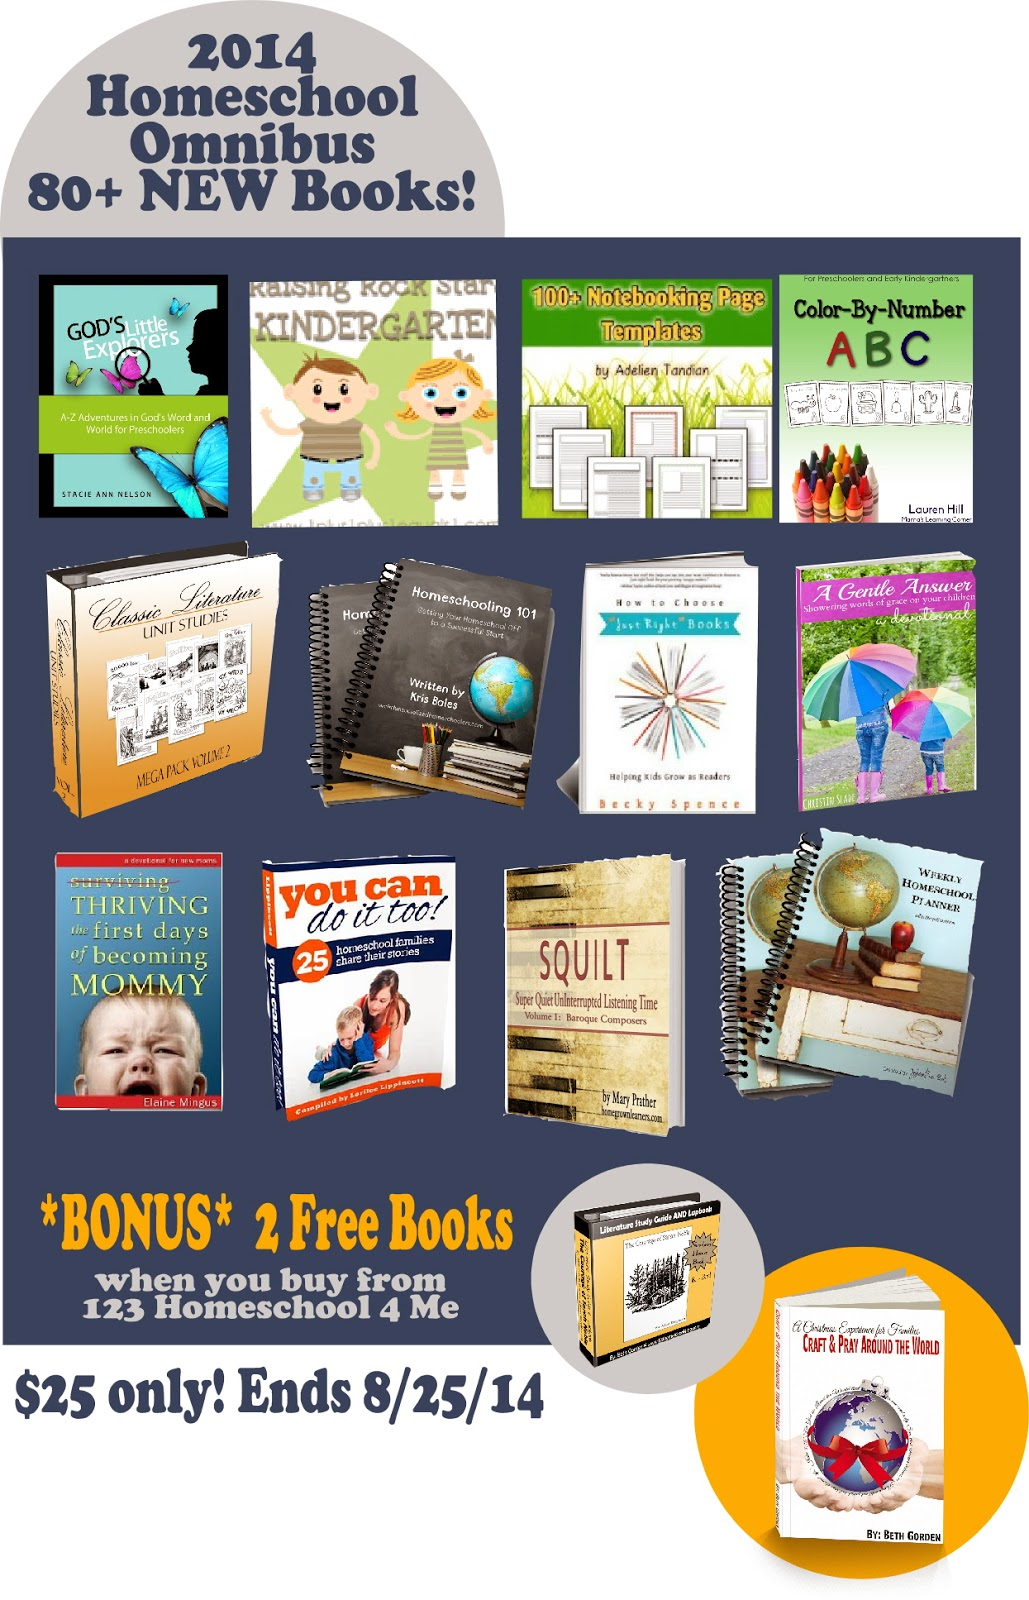 Get 2 BONUS Books when purchasing your 2014 Homeschool Omnibus HERE!